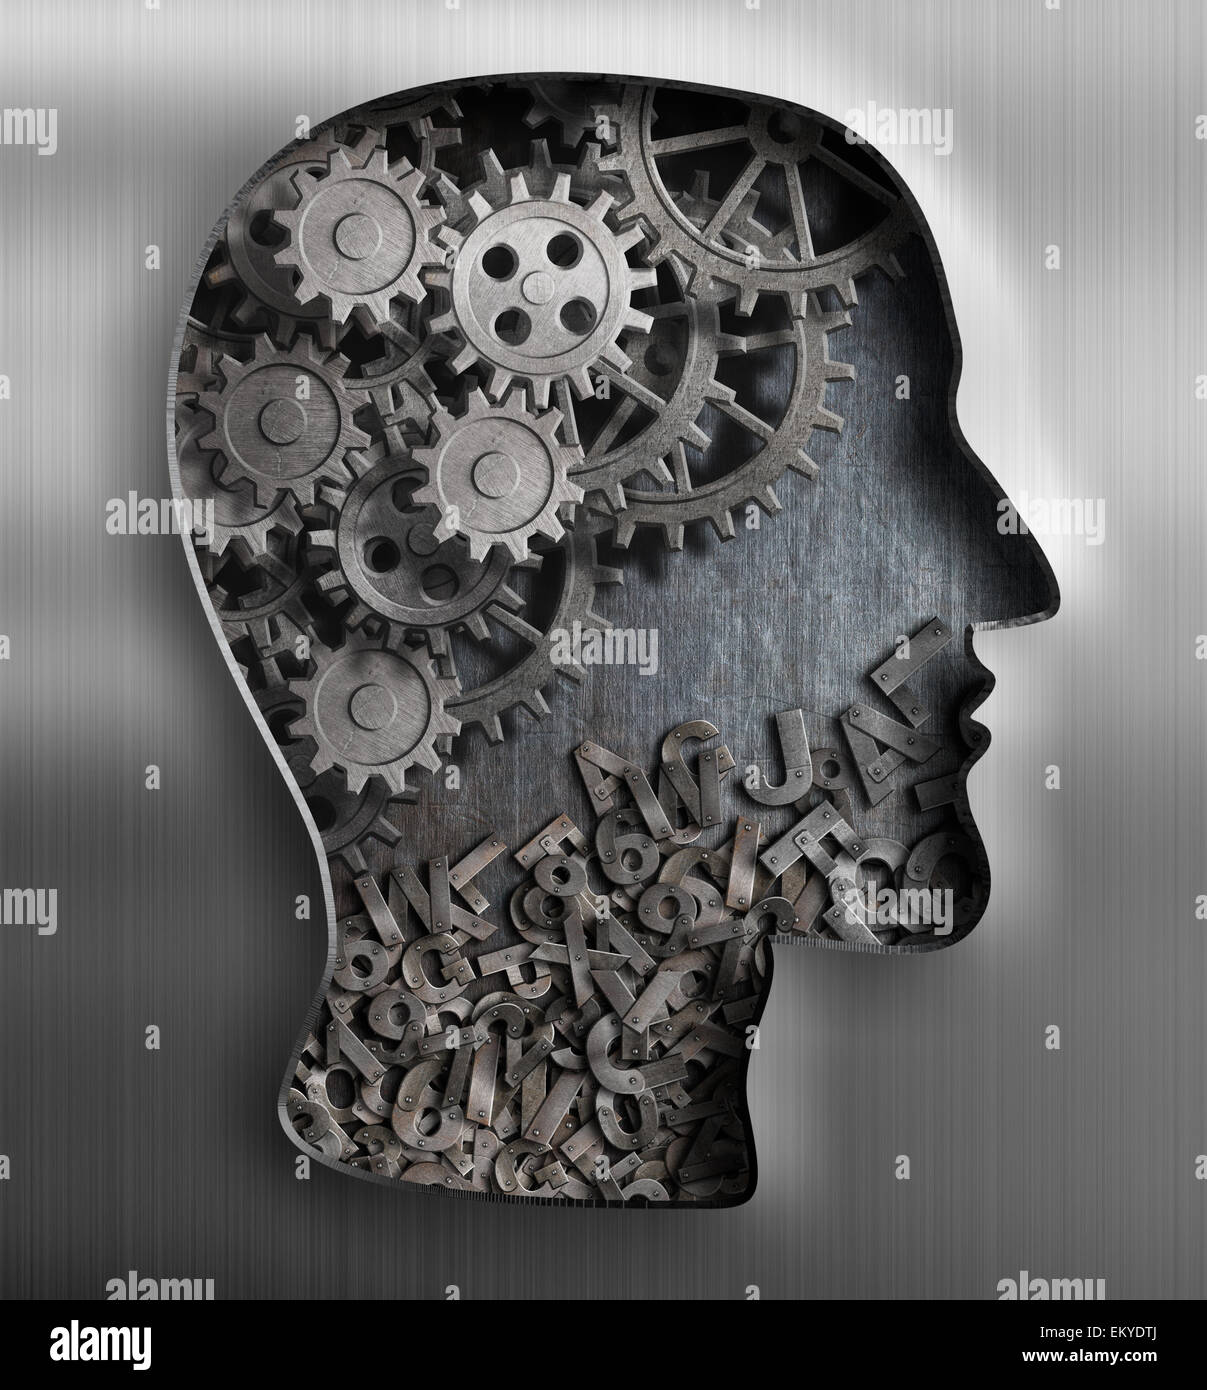 Metal brain. Thinking,  psychology, creativity, language concept. - Stock Image